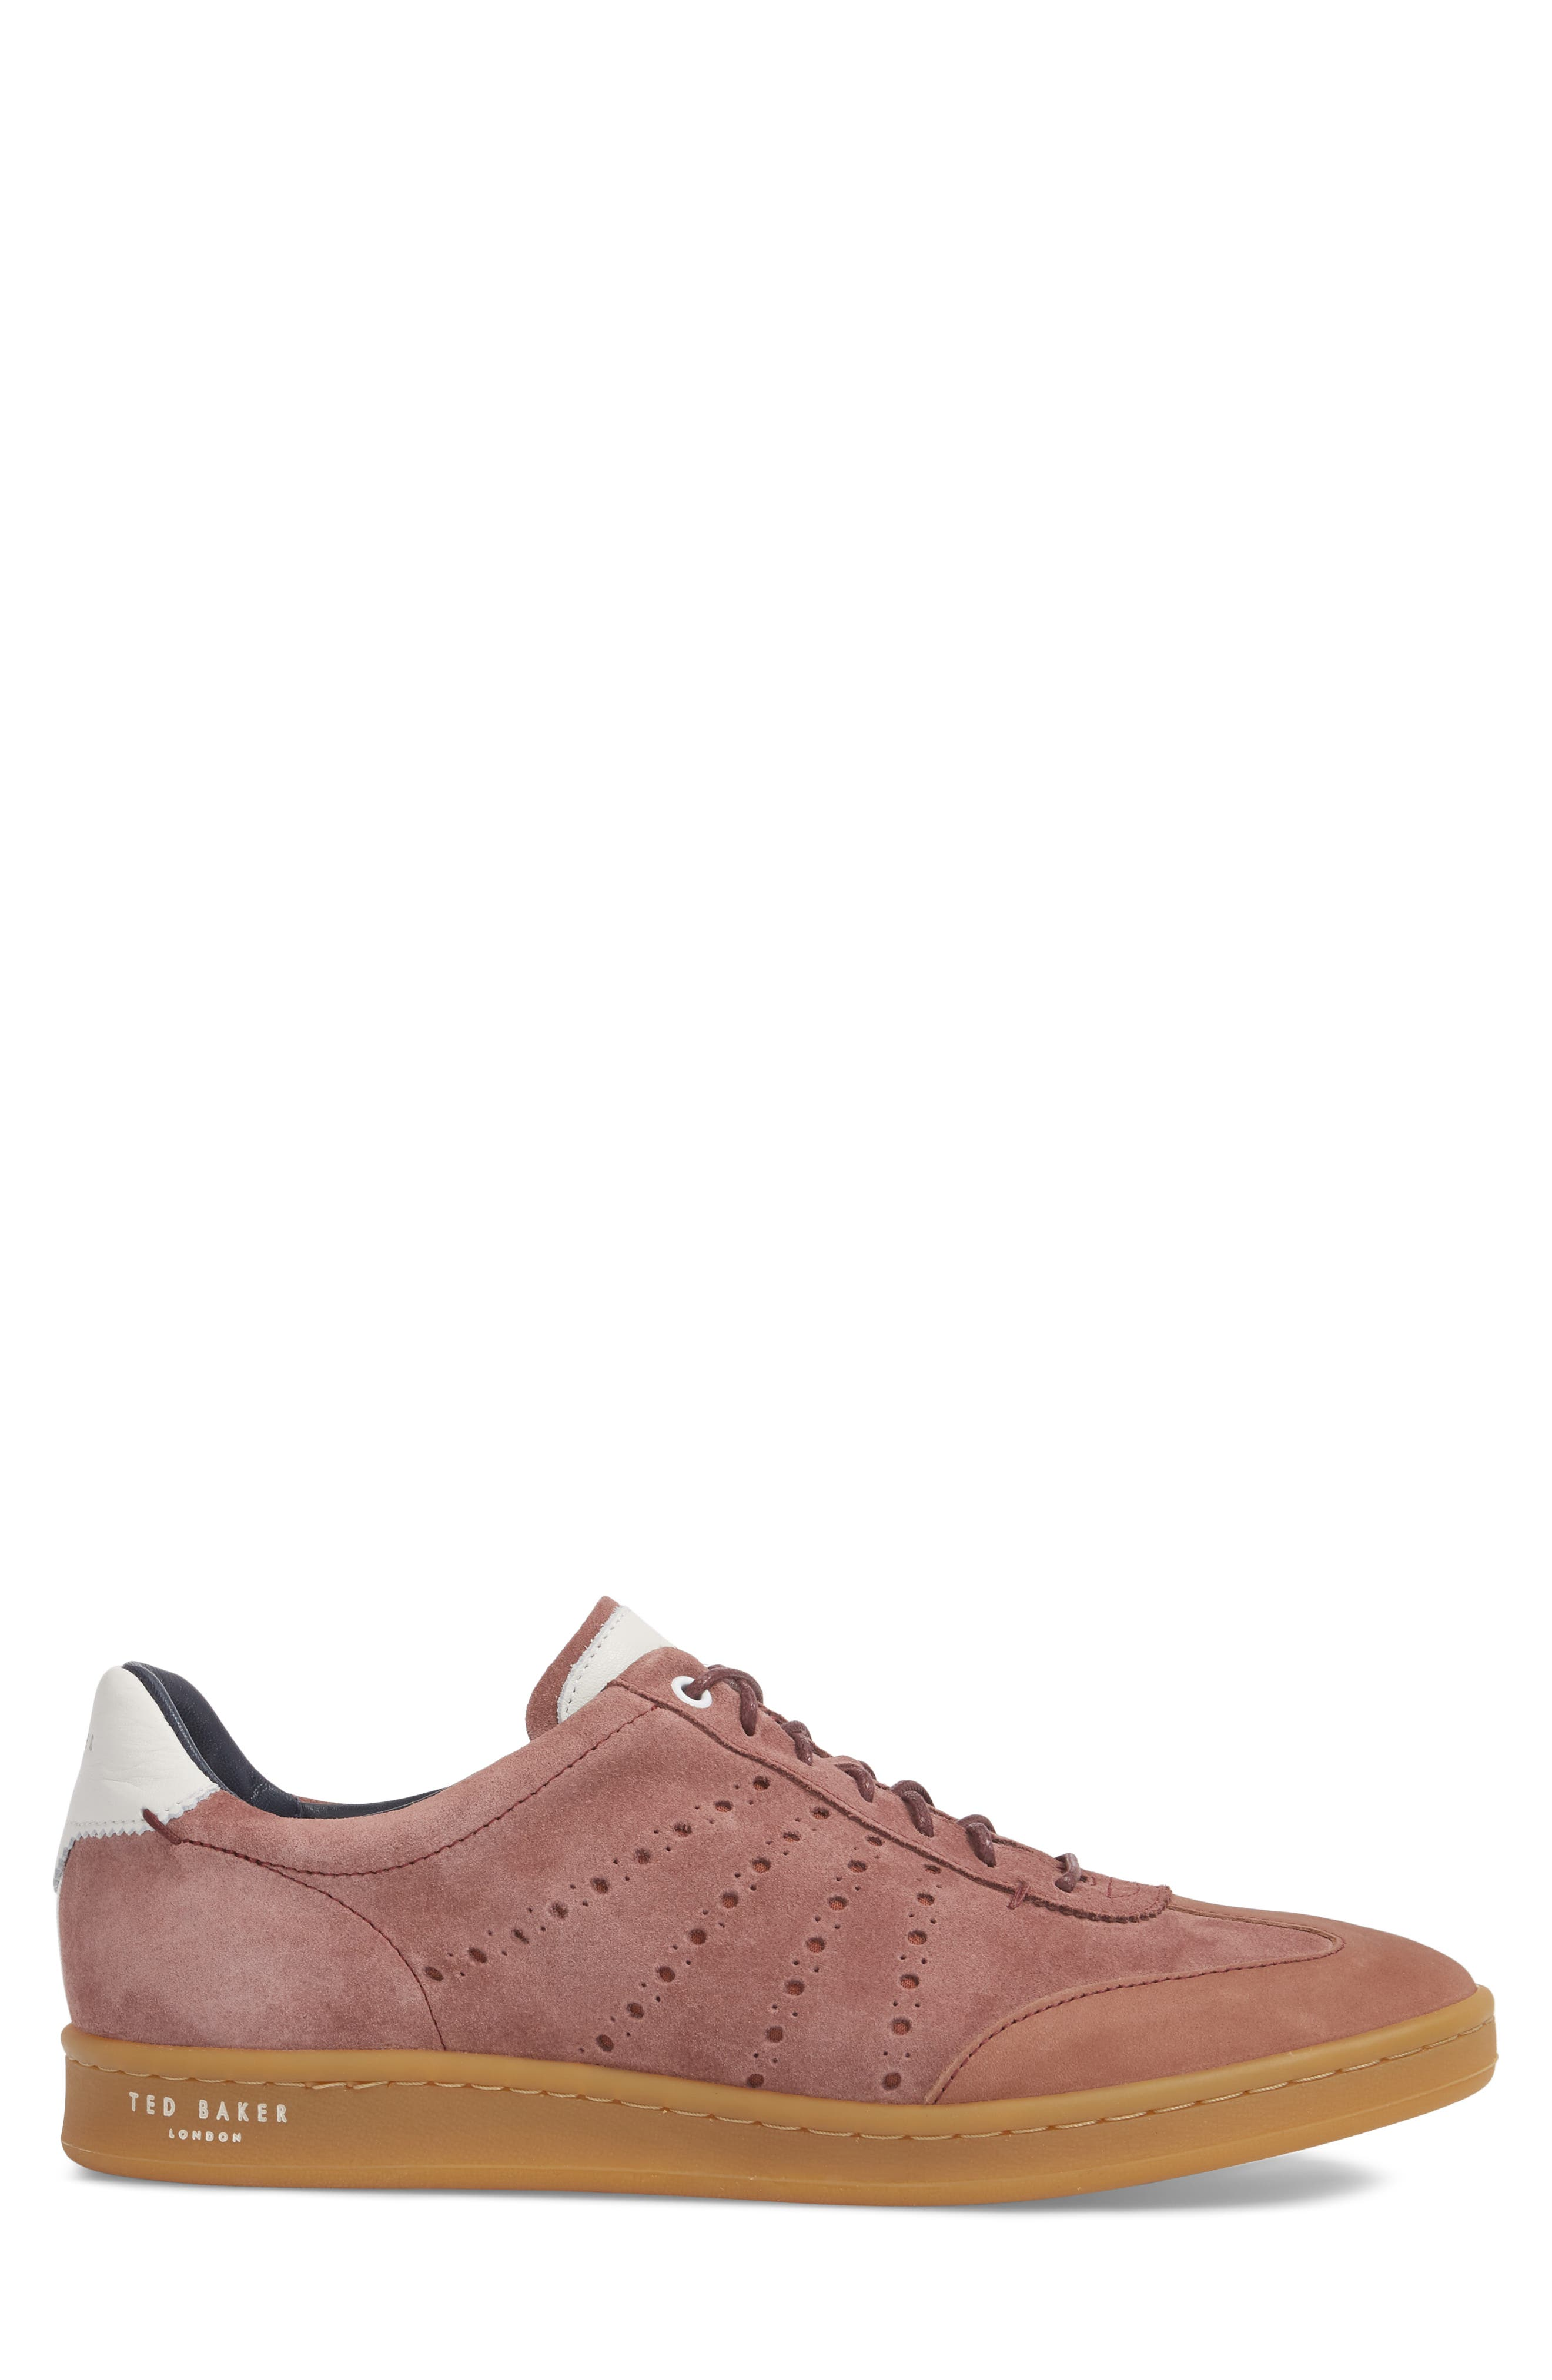 Orlees Low Top Sneaker,                             Alternate thumbnail 3, color,                             Pink Leather/ Suede